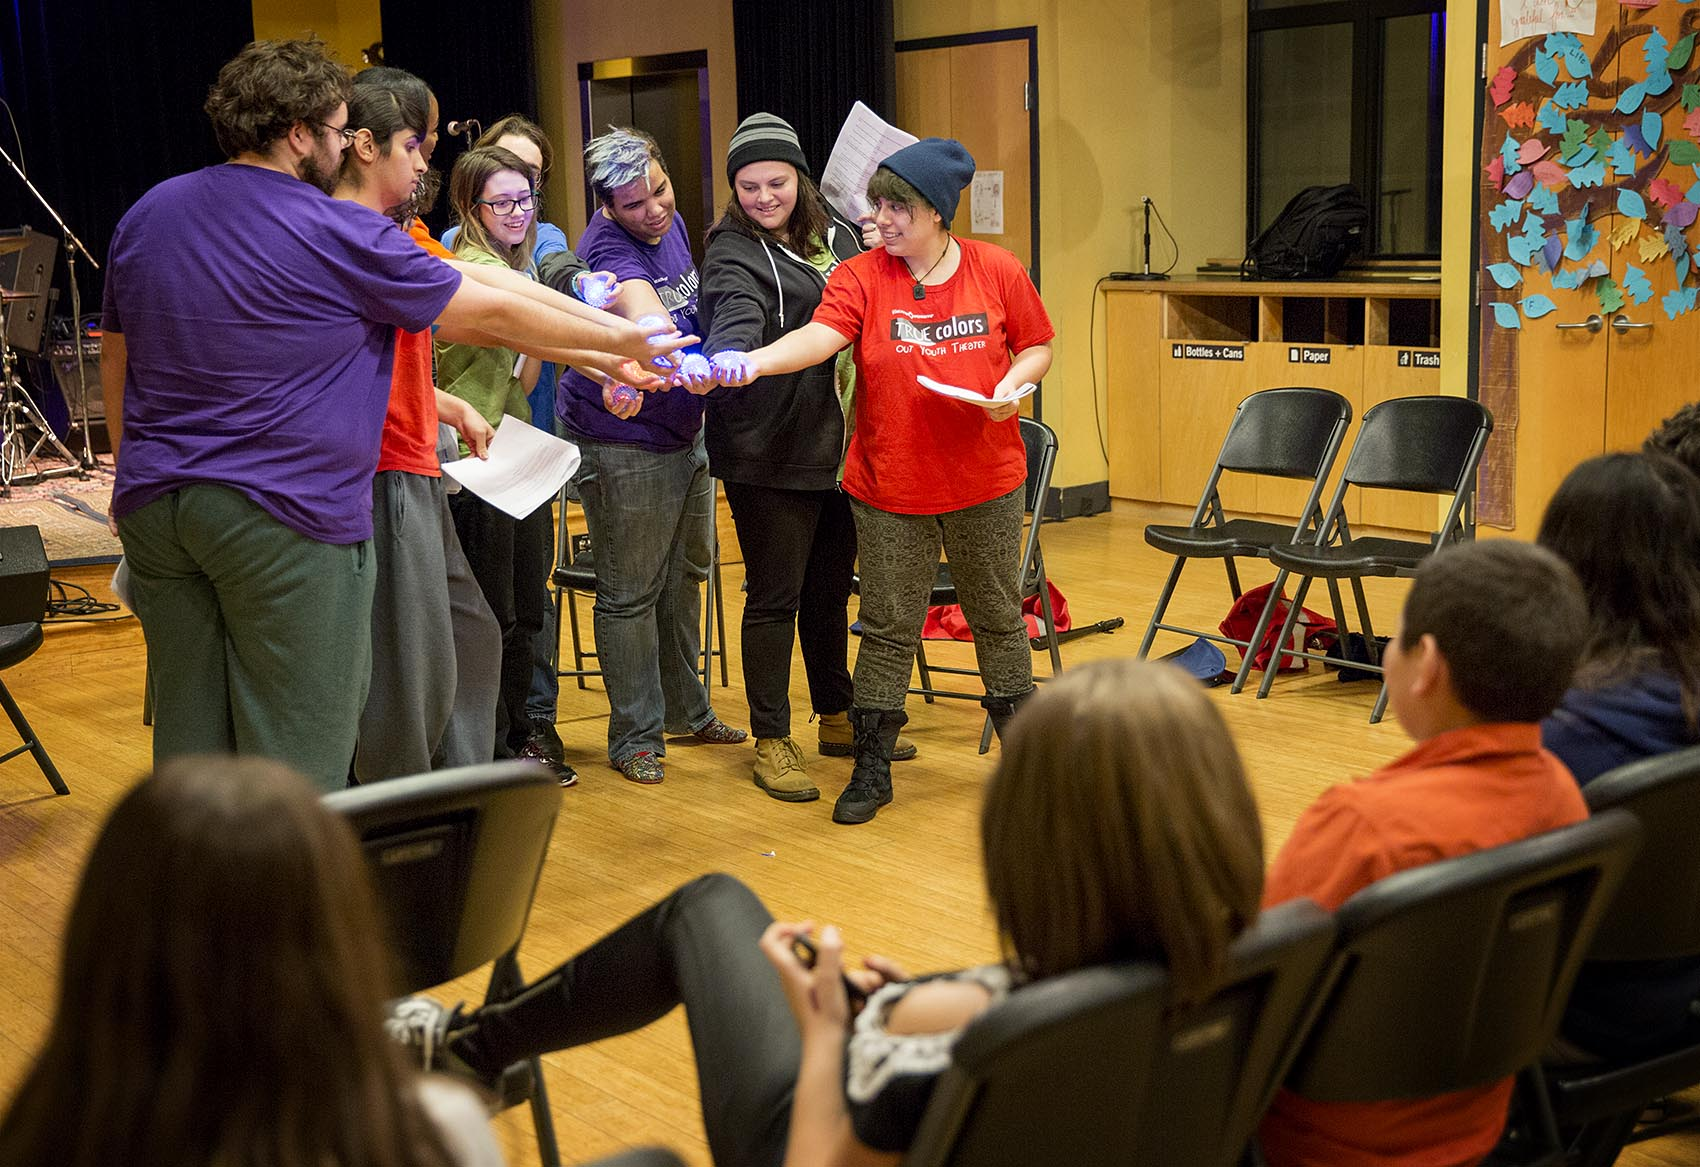 Members of the Boston-based theater troupe True Colors conclude a reading at Zumix in East Boston. (Robin Lubbock/WBUR)